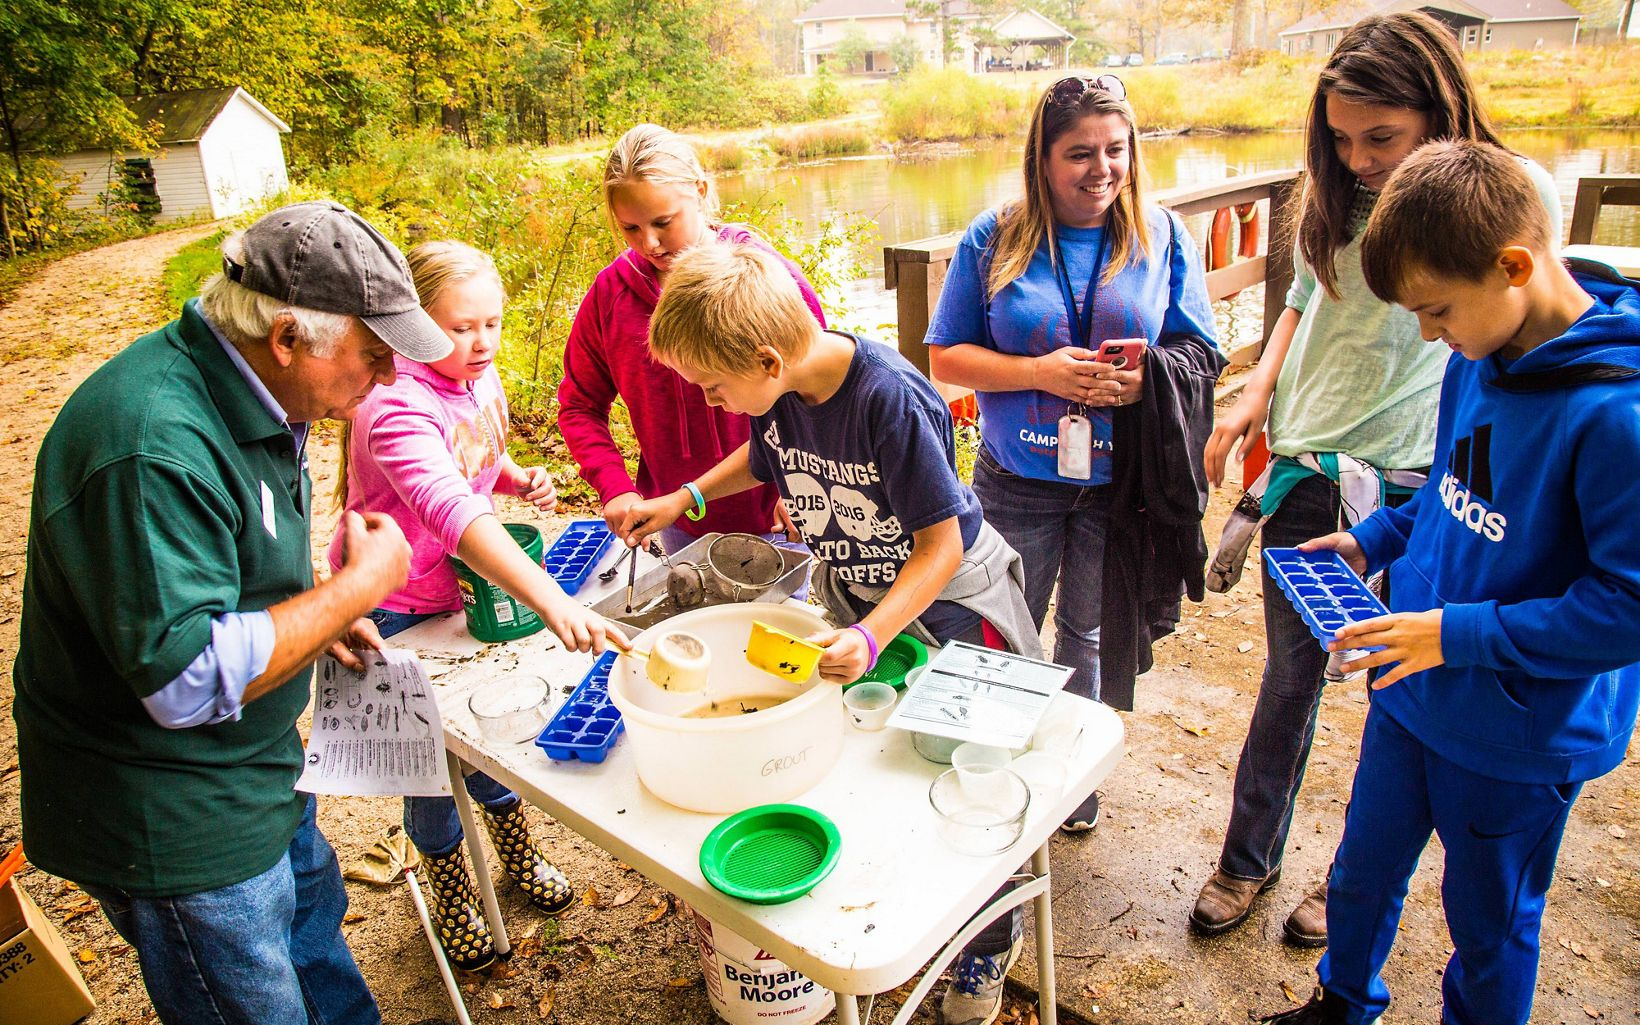 Kids explore the natural world at the Grand River Conservation Campus